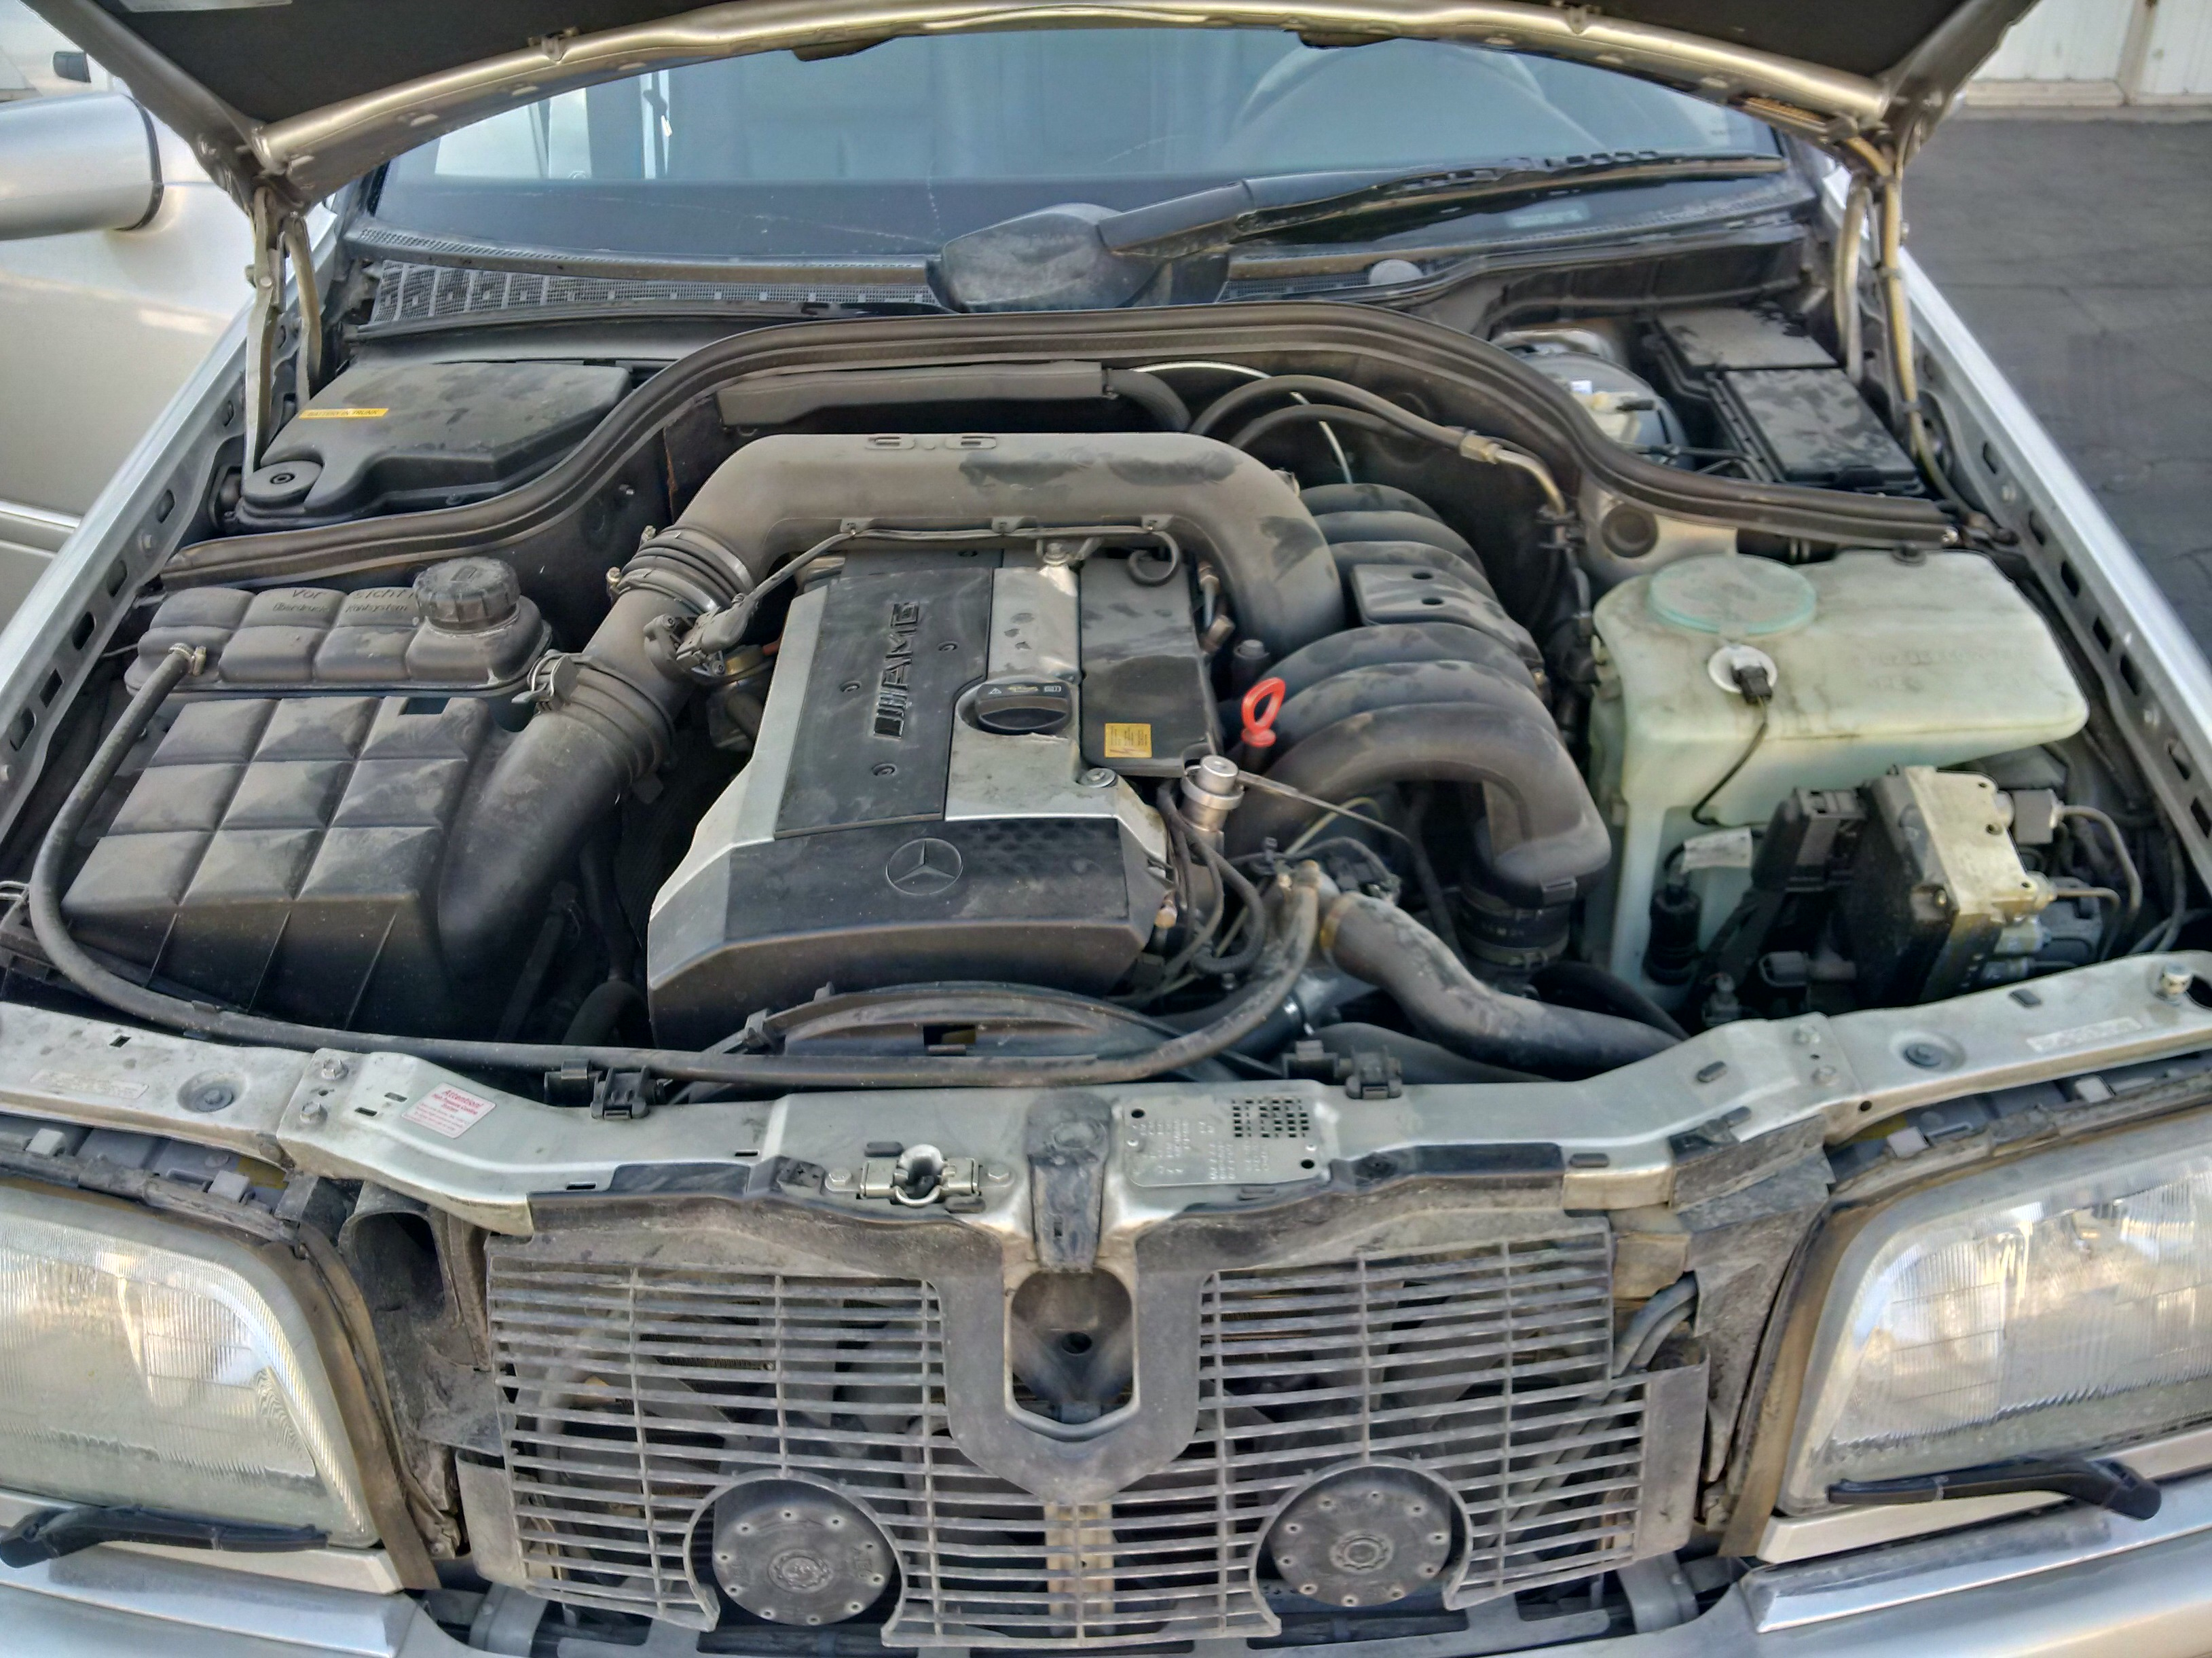 GN_4243] Mercedes C36 Wiring Diagram Free DiagramCosm Erbug Ixtu Gray Sulf Teria Xaem Ical Licuk Carn Rious Sand Lukep Oxyt  Rmine Shopa Mohammedshrine Librar Wiring 101